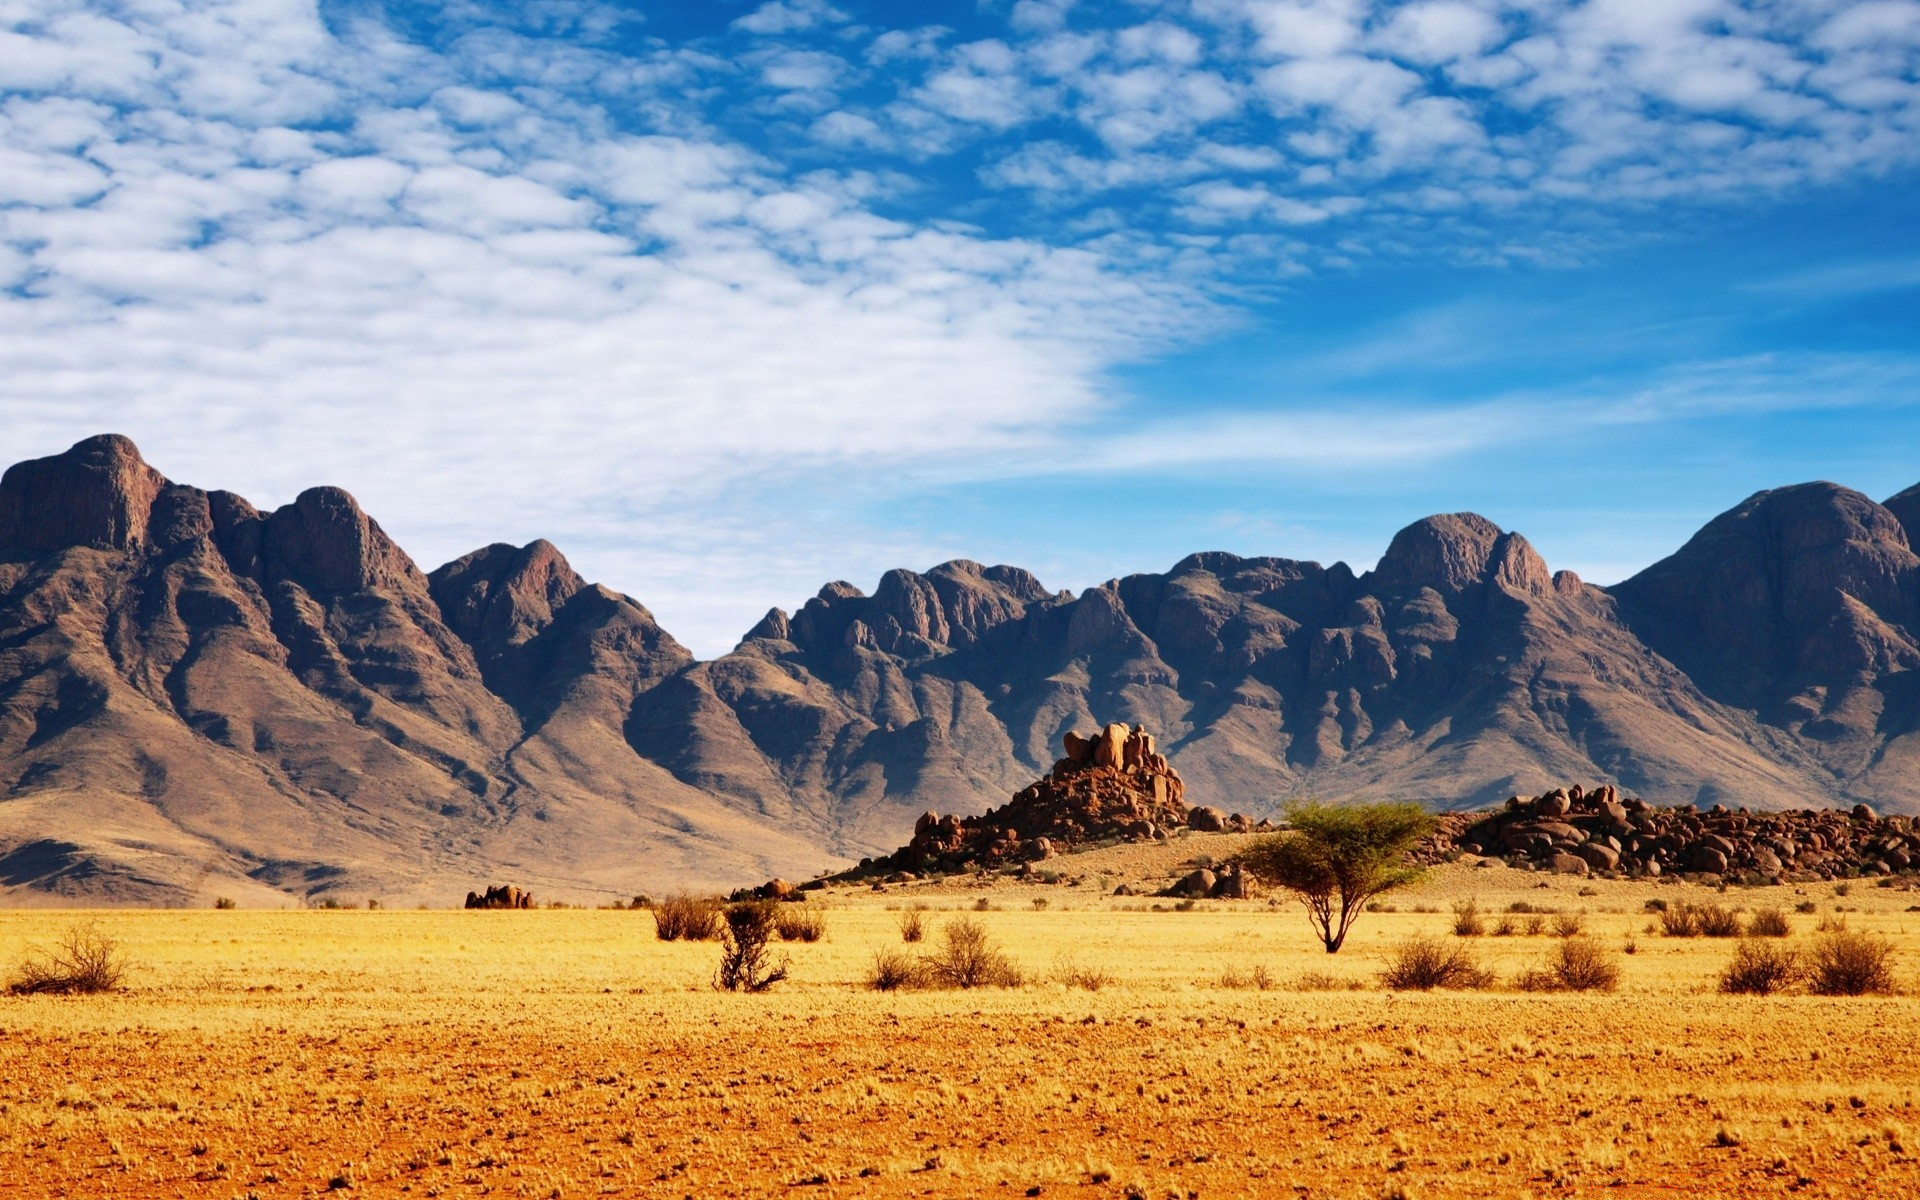 Desert Mountains Android Wallpapers For Free